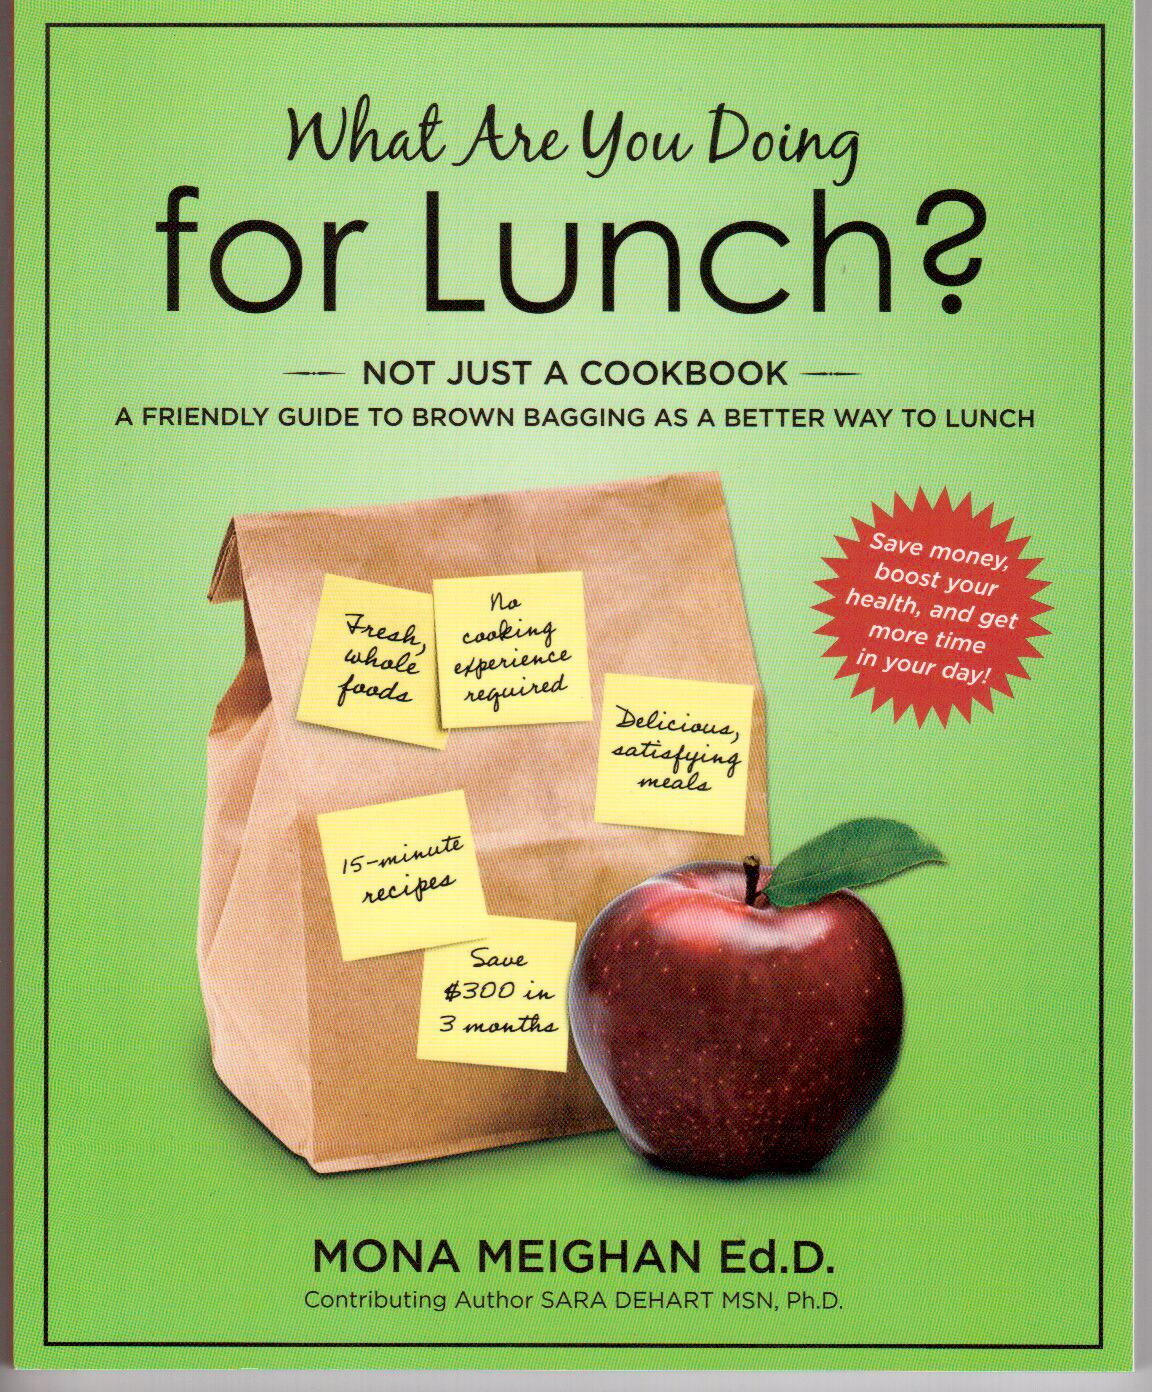 Need Lunch Box Ideas Tips For Fast Fun Healthy Lunch To Go